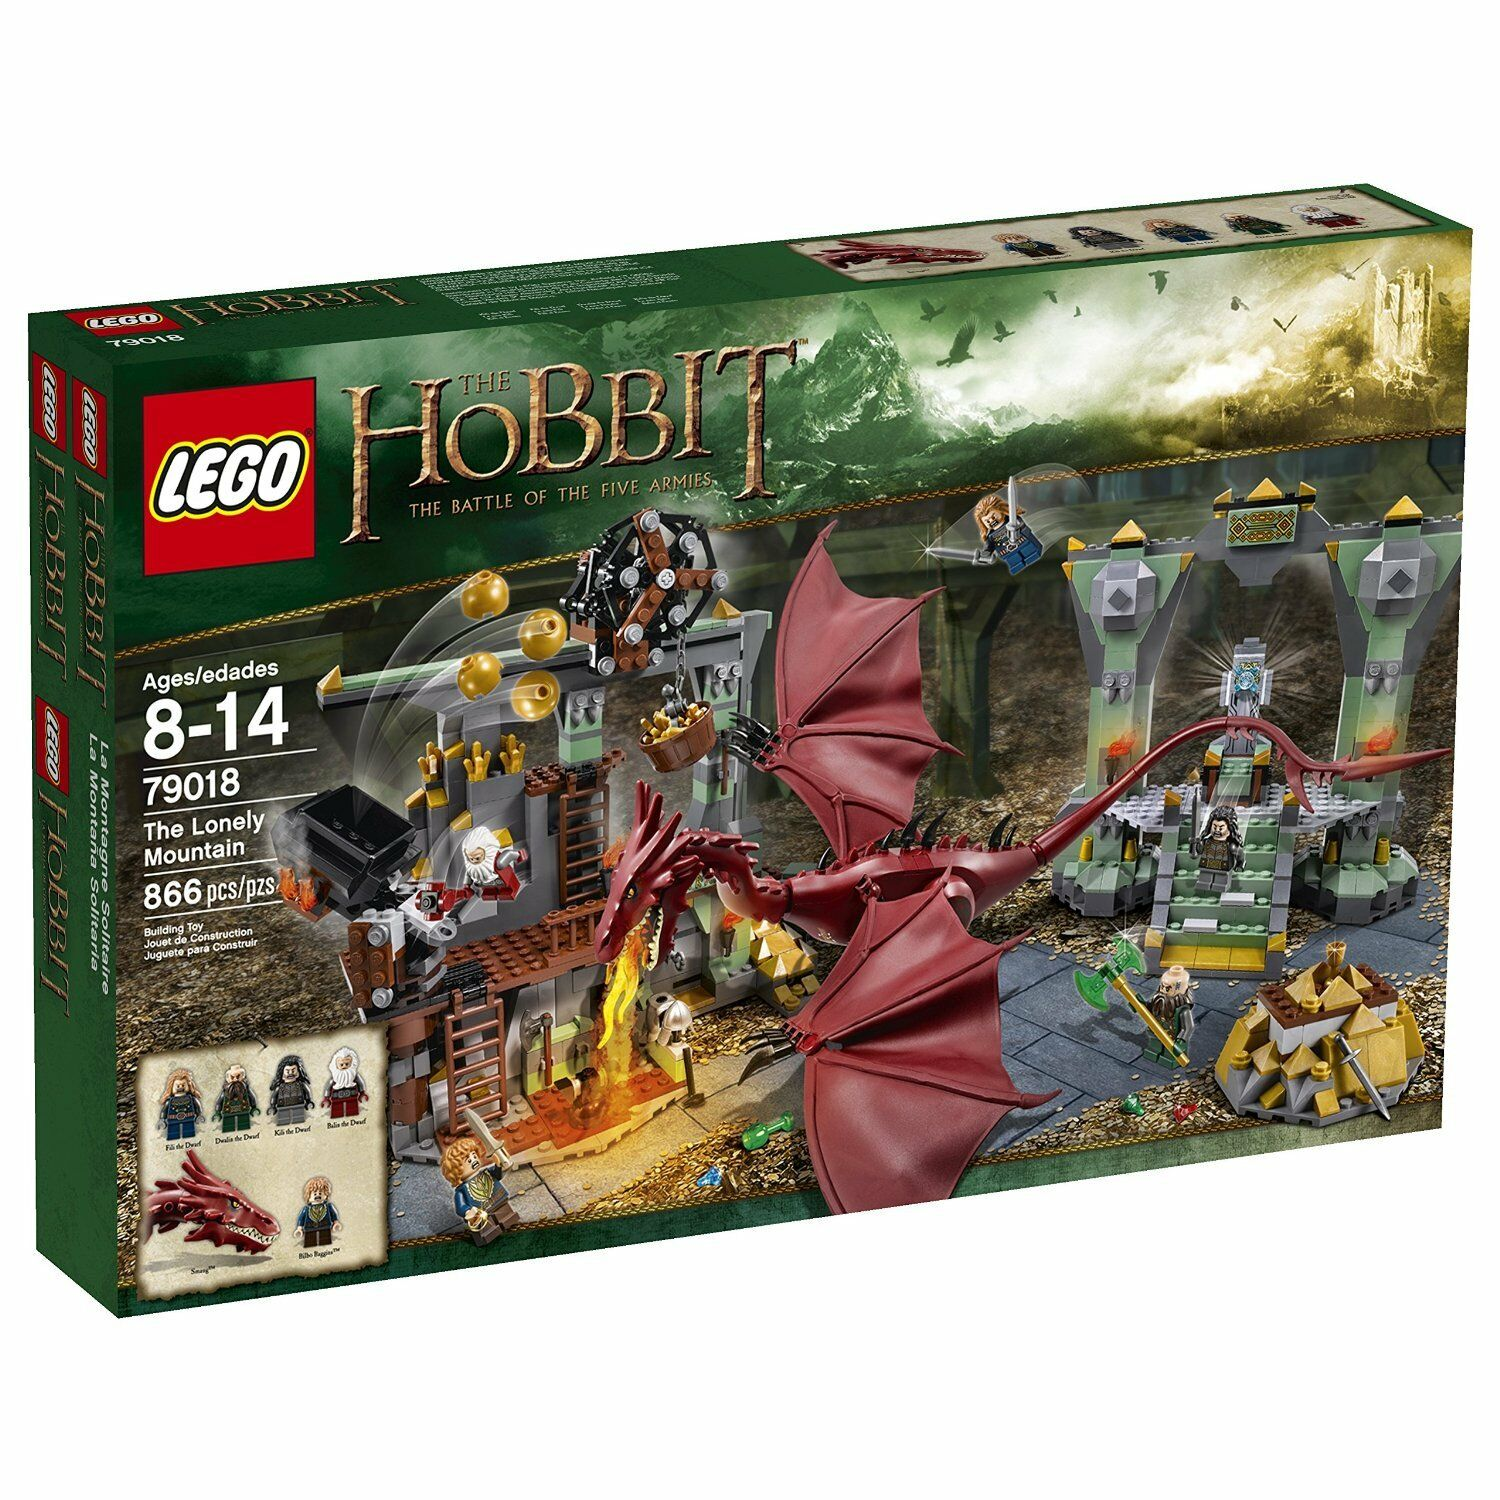 LEGO 79018 - The Hobbit - The Lonely Mountain - New   Factory Sealed